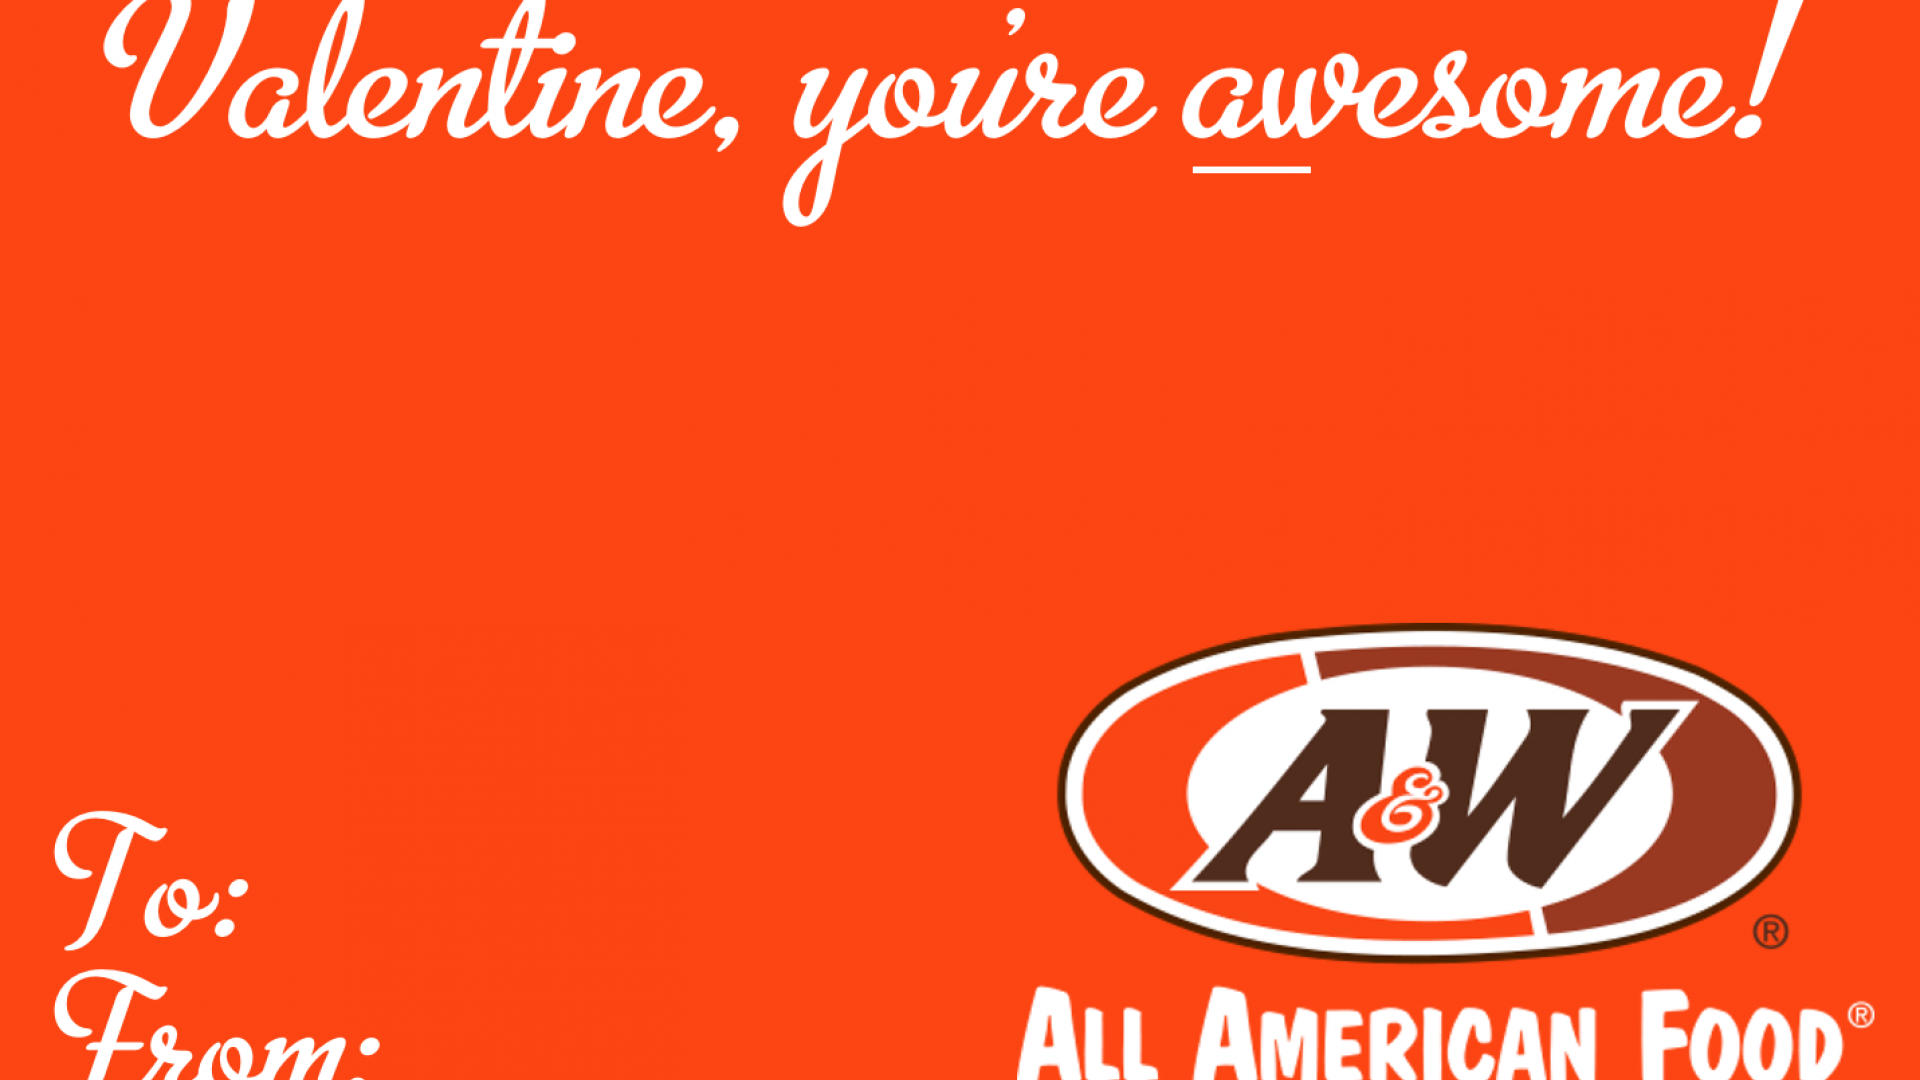 A&W Valentine's Day Card